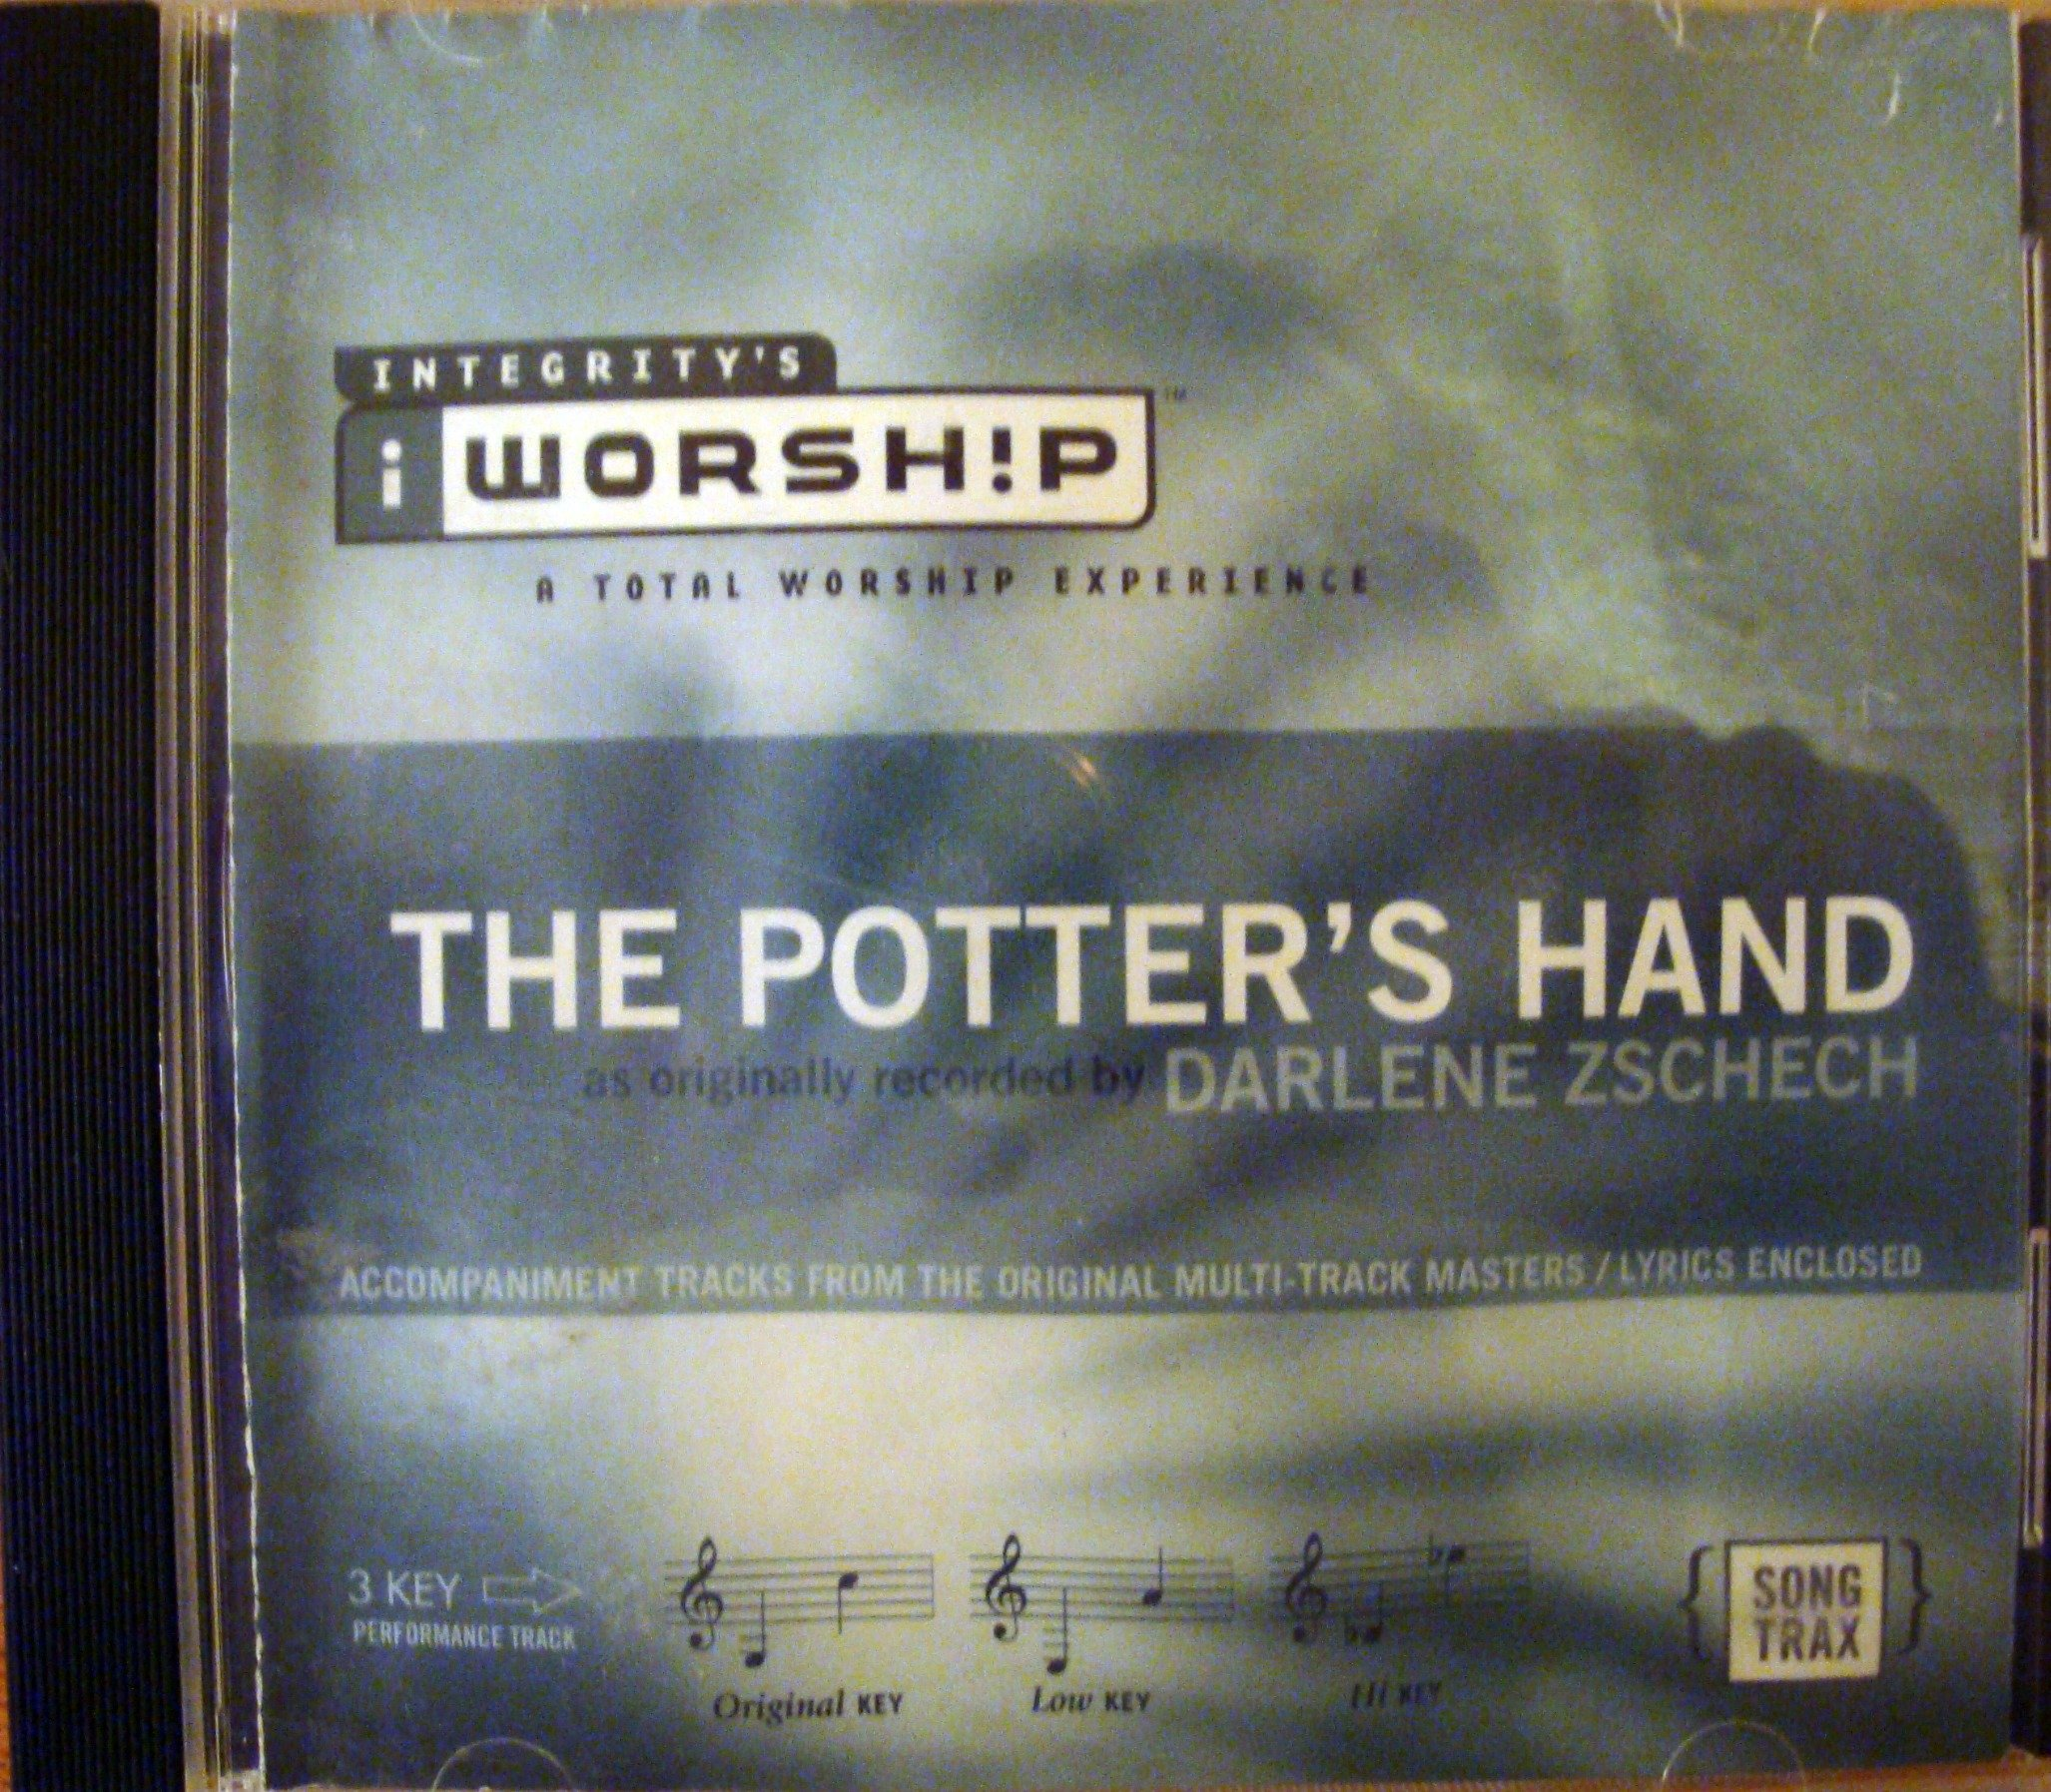 The Potter's Hand [Performance/Accompaniment Track] by Integrity Music